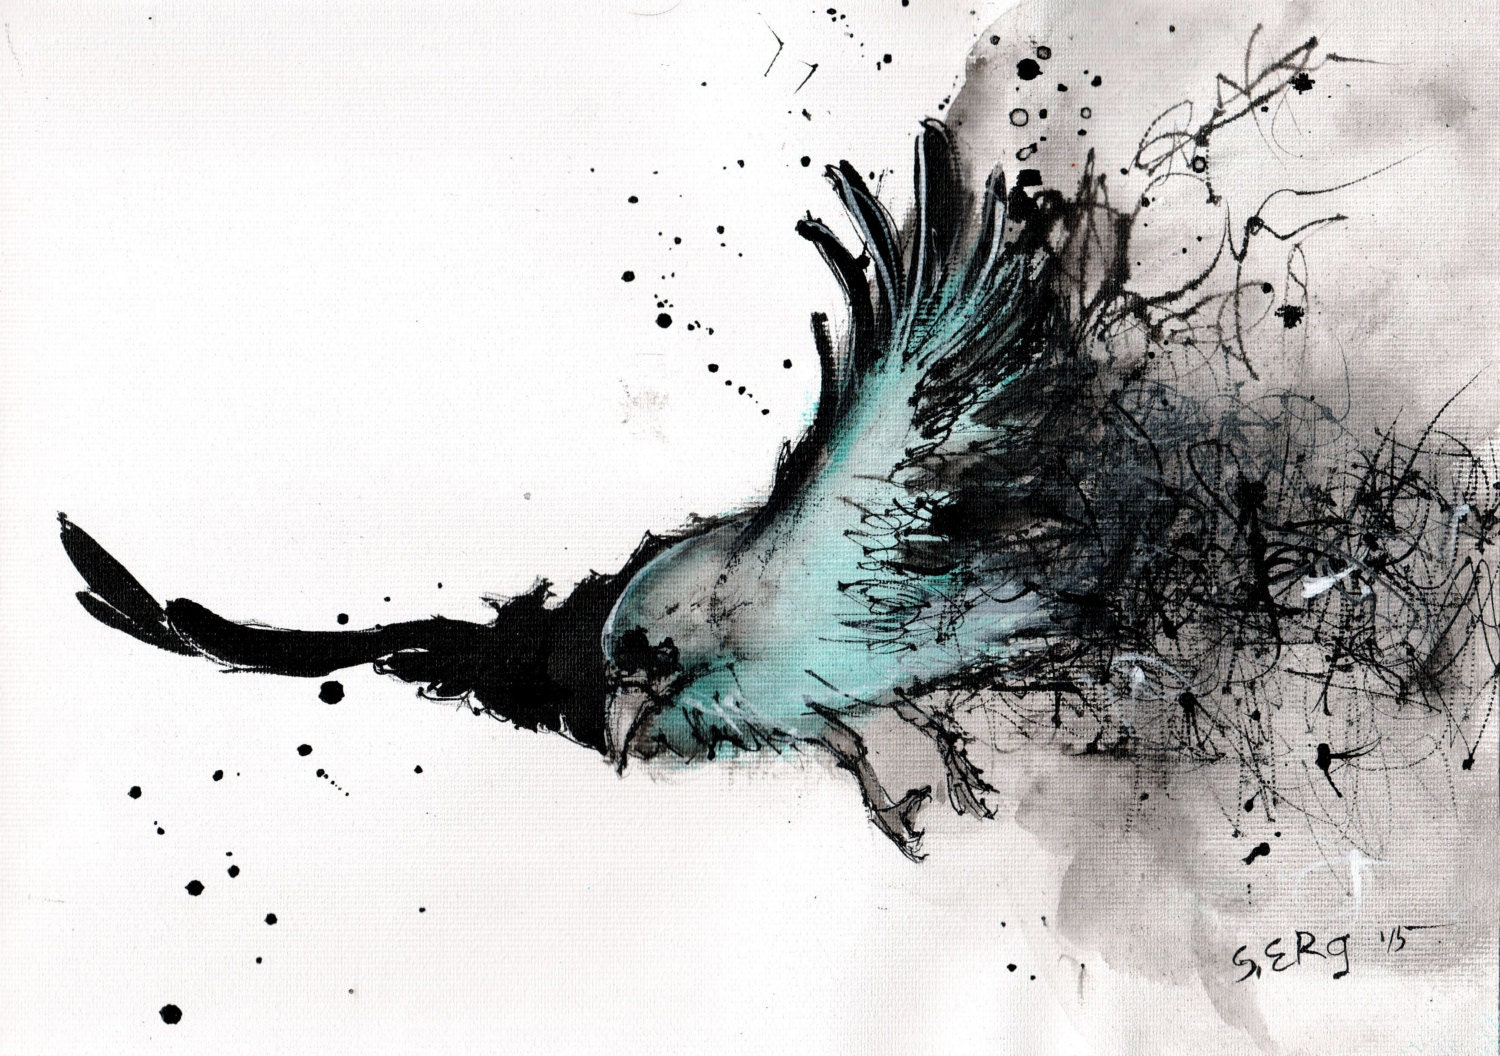 Ink drawing on canvas A4 20x30cm Abstract flying bird